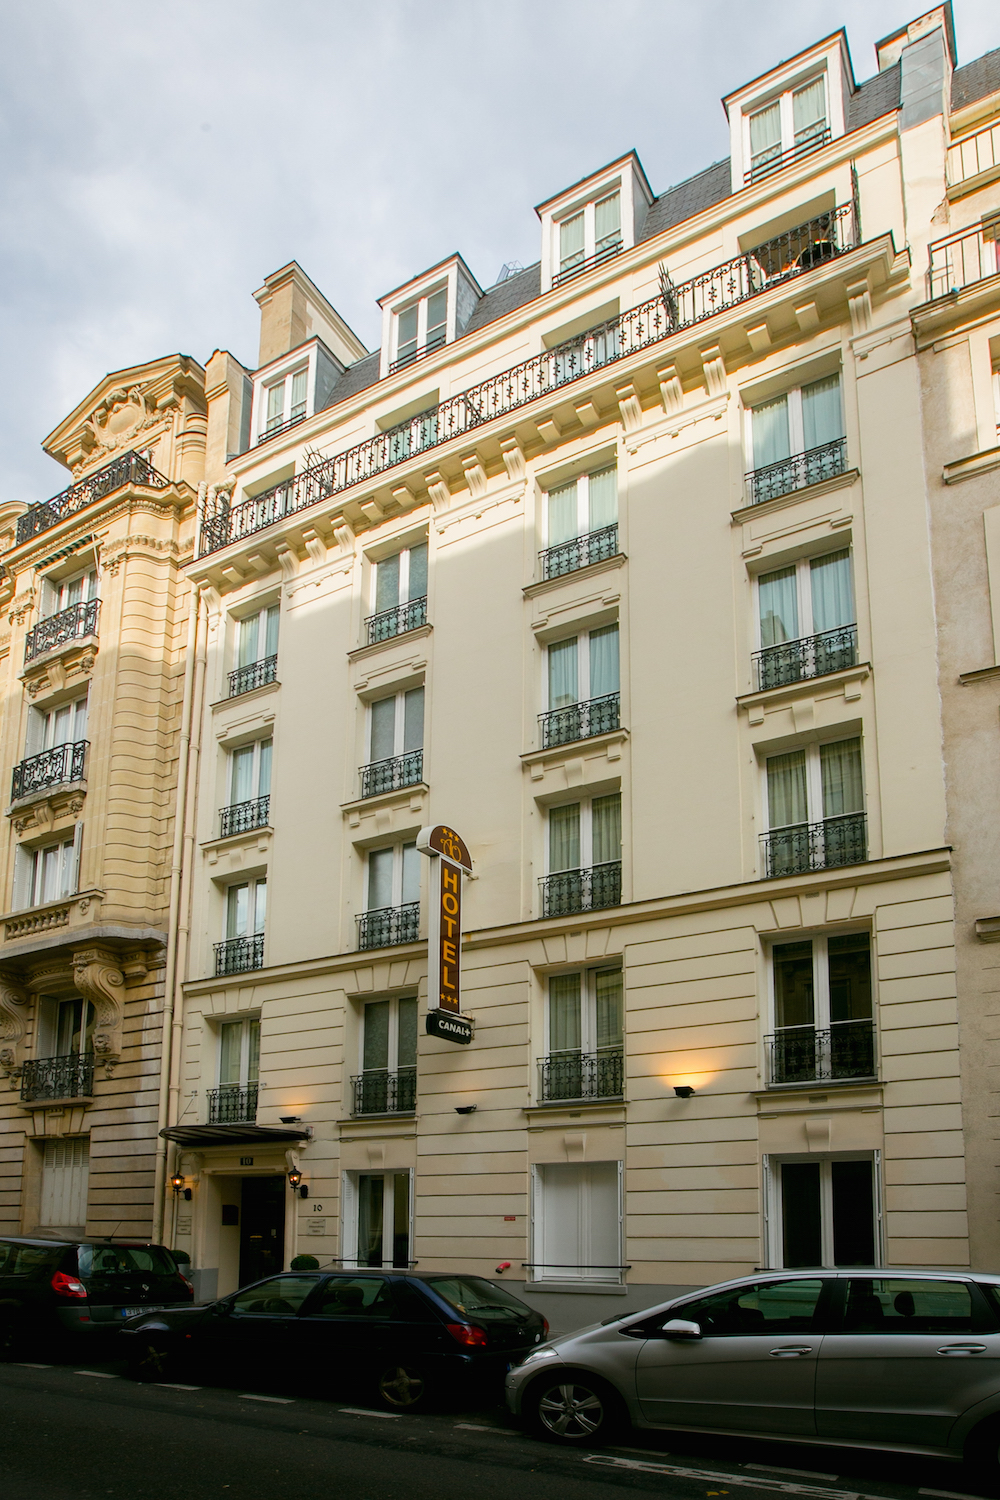 H tel alexandrine op ra paris sur h tel paris for Trouver un hotel paris